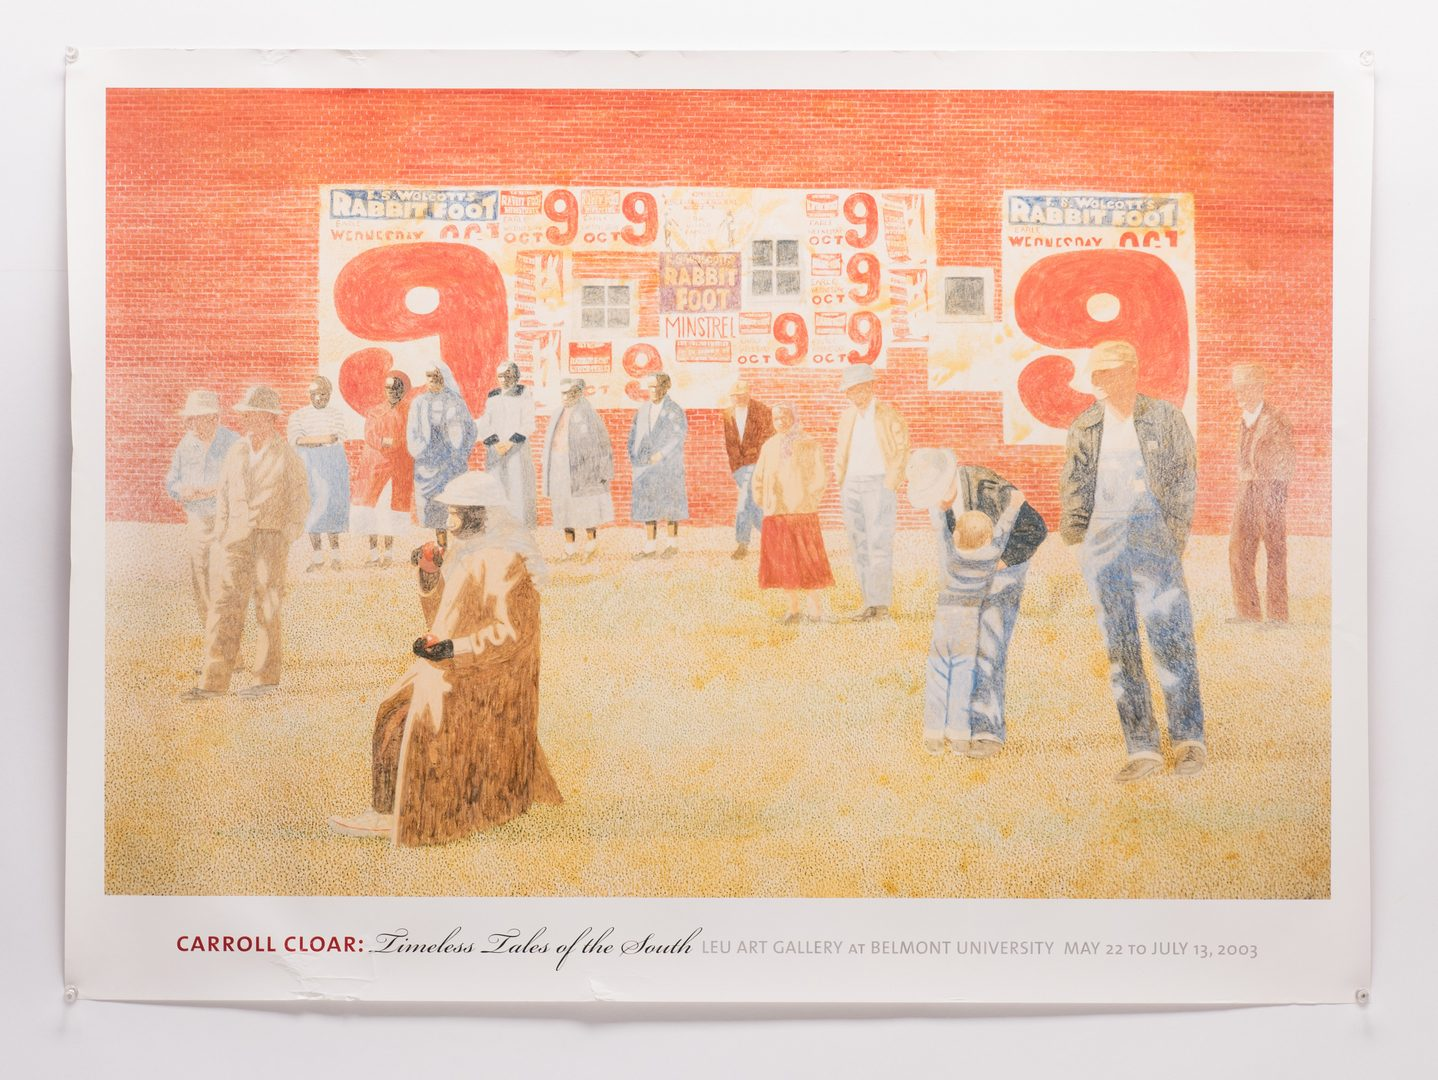 Lot 127: Carroll Cloar painting, The Waiting, with sketch and poster